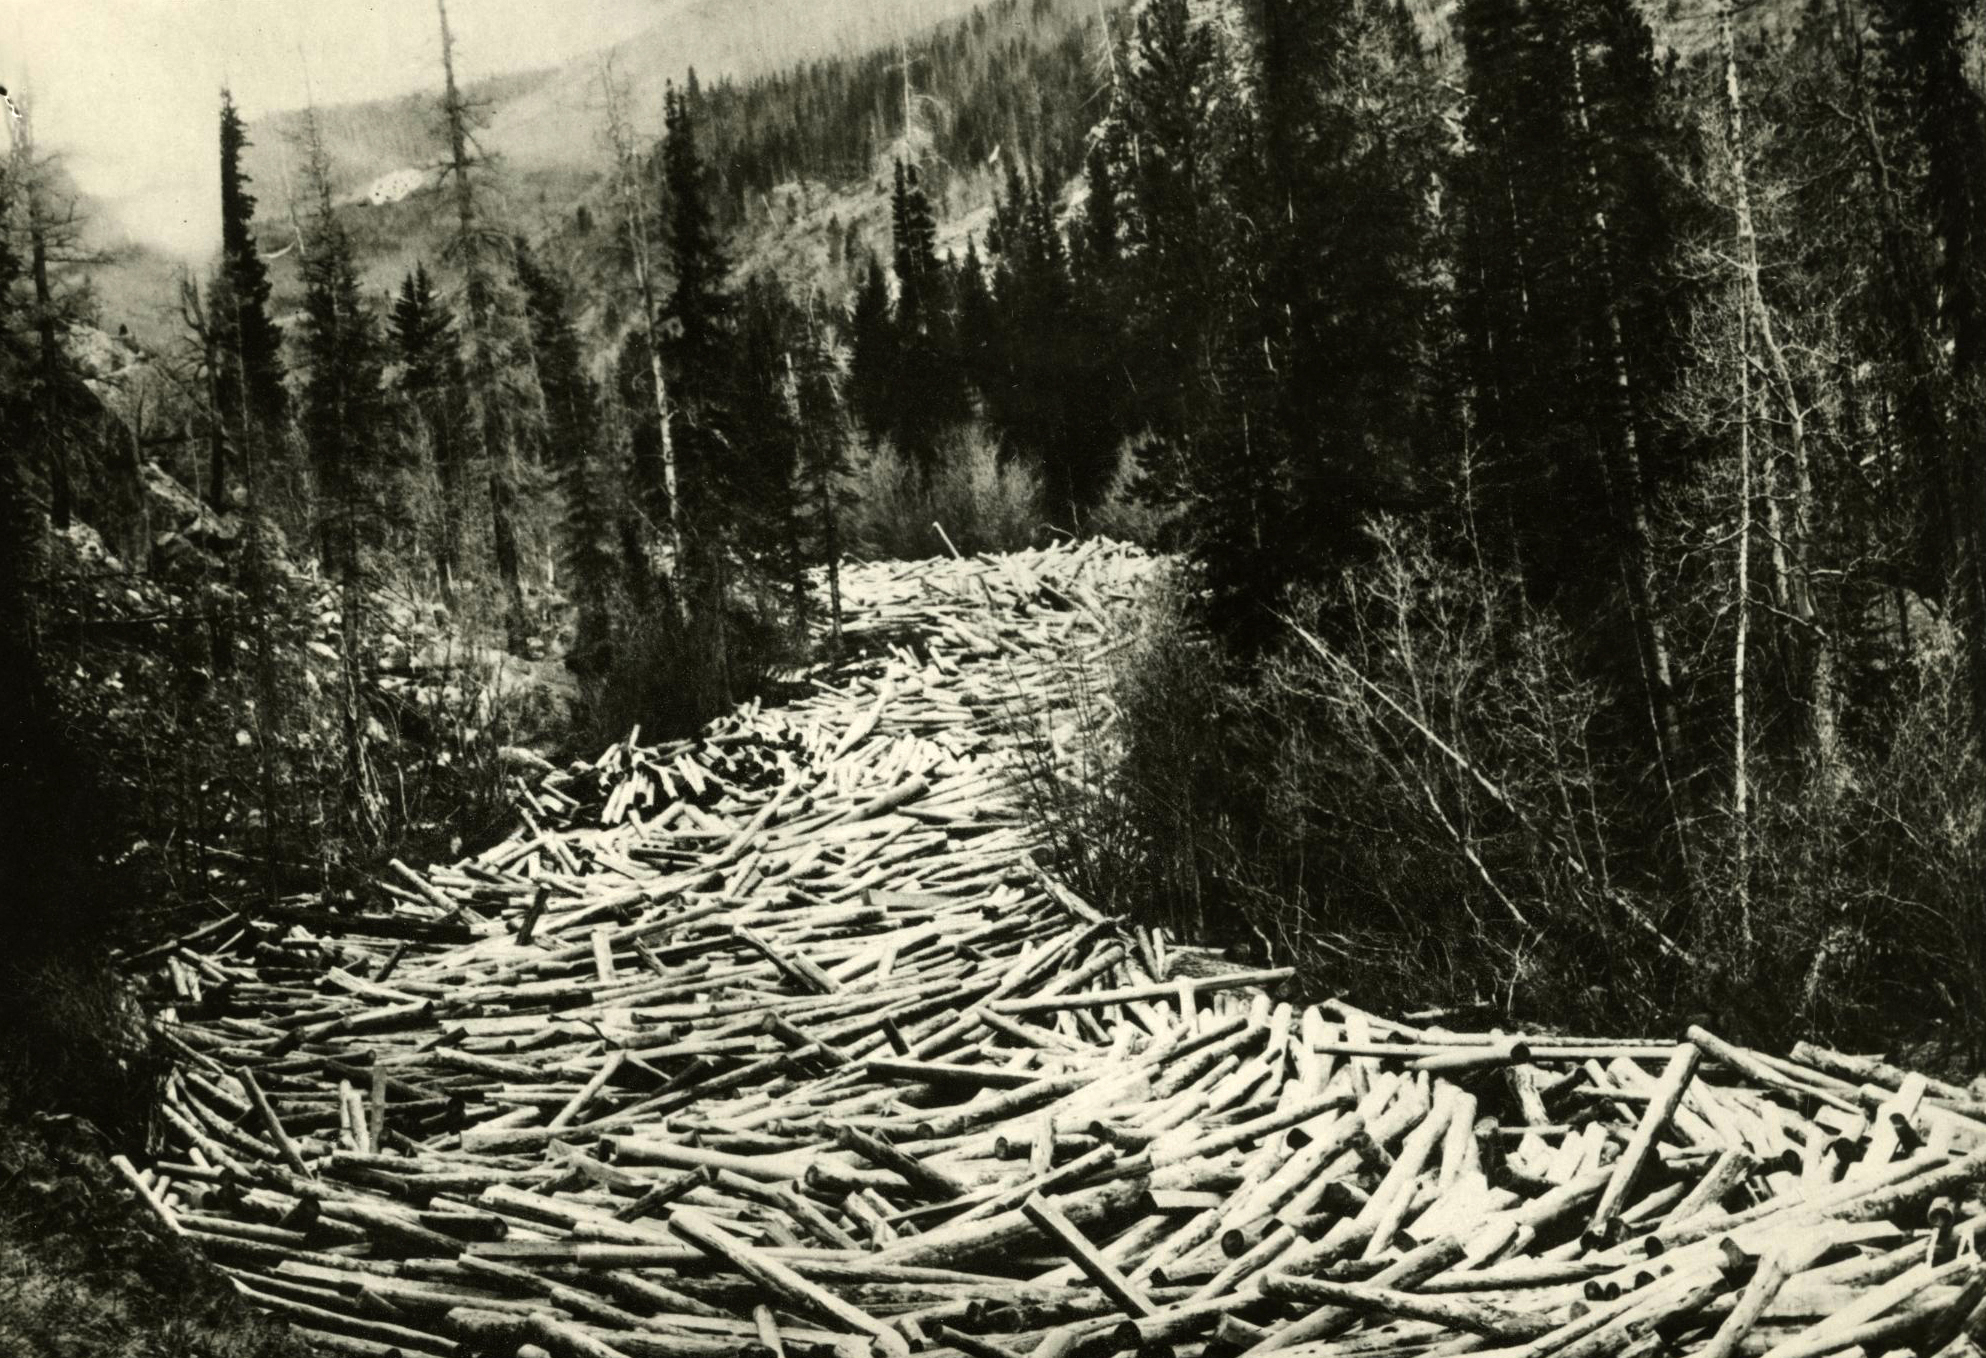 Logs awaiting spring flood to carry them to Columbia River